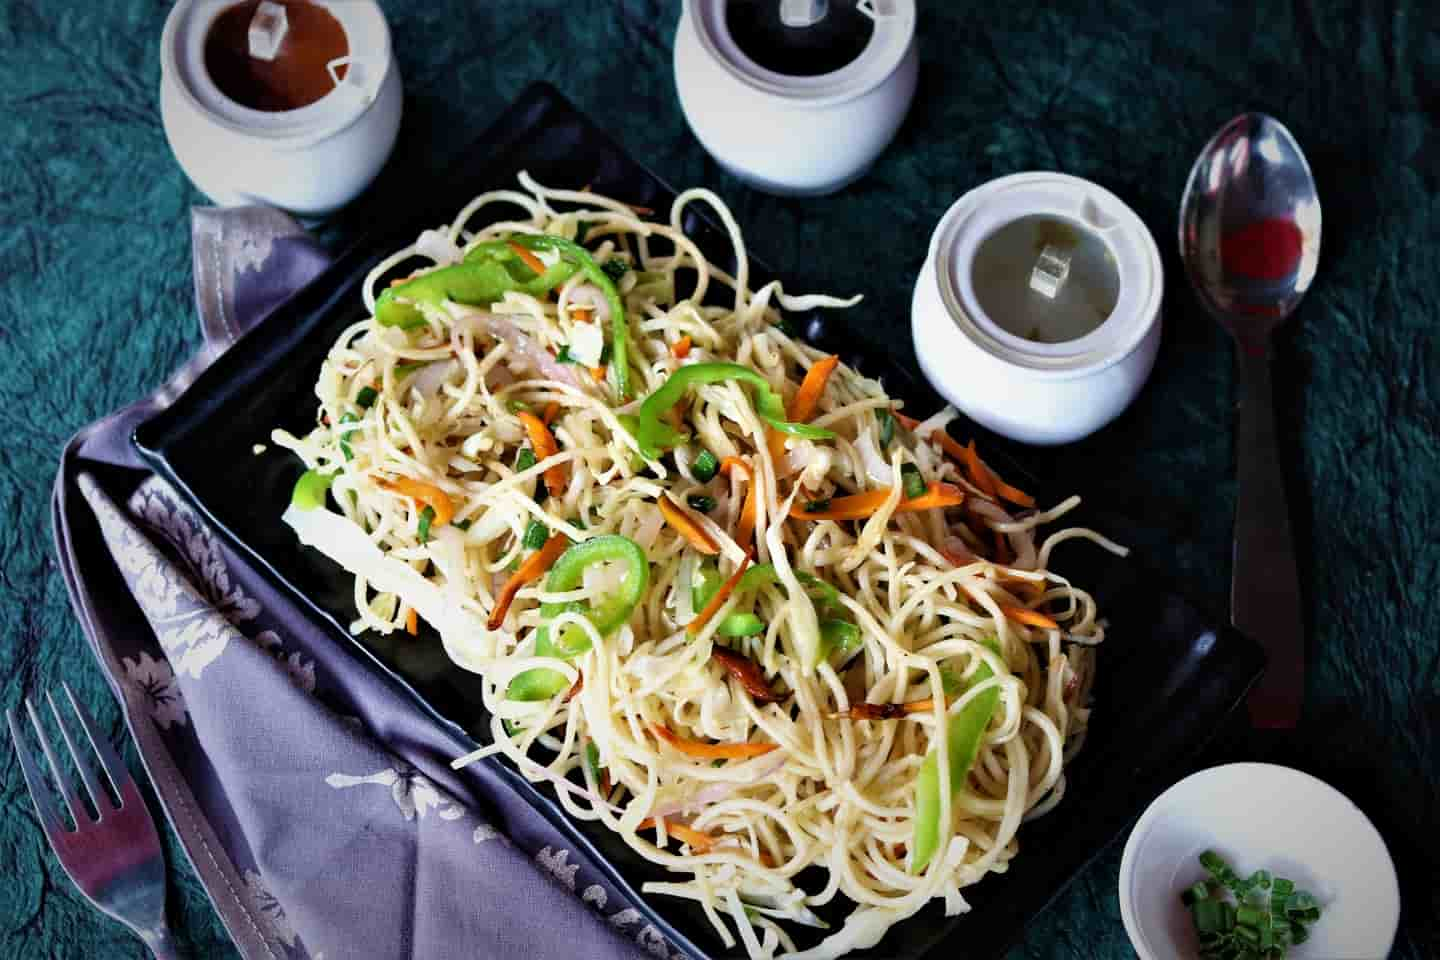 Chowmein - Best Street Food Dishes Of Shillong Which Are Delicious